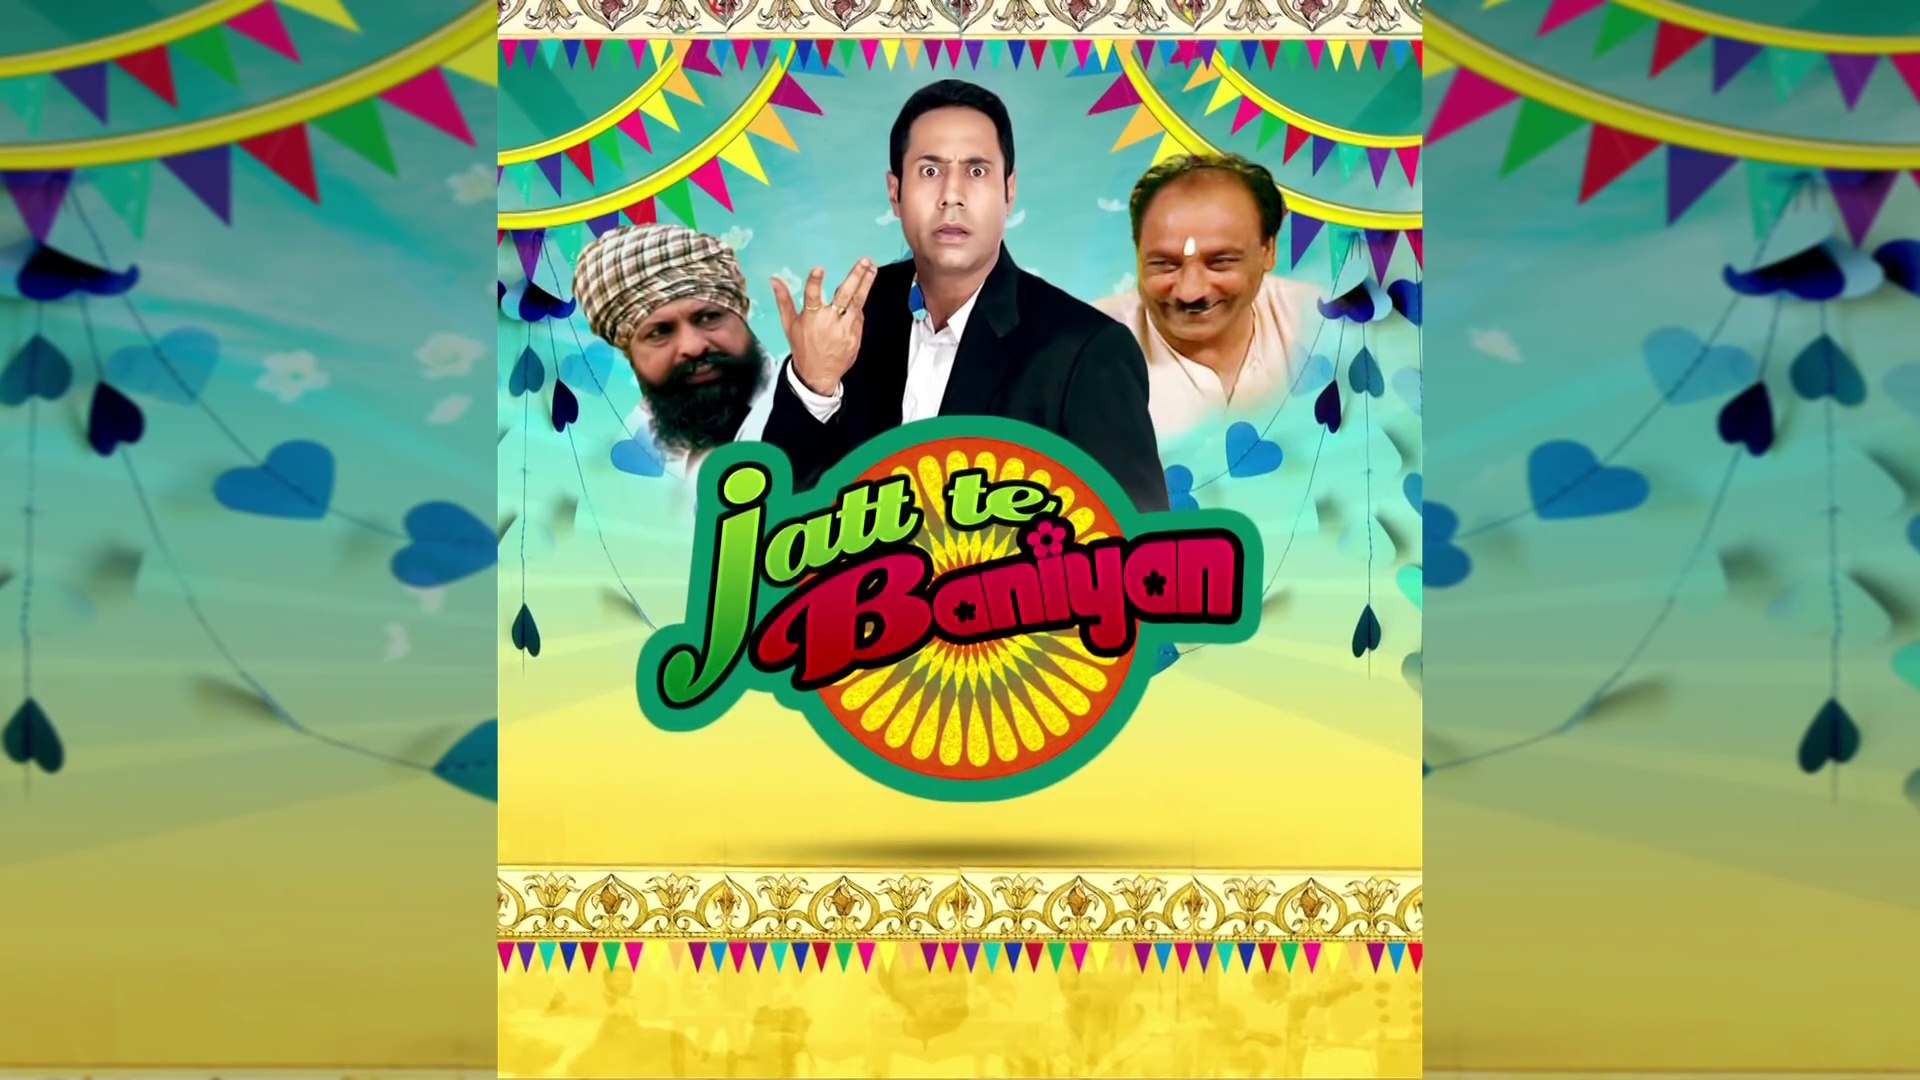 New Punjabi Movie 2015 - JATT TE BANIYA - Punjabi Full Movie 2015 - Punjabi Movie 2015